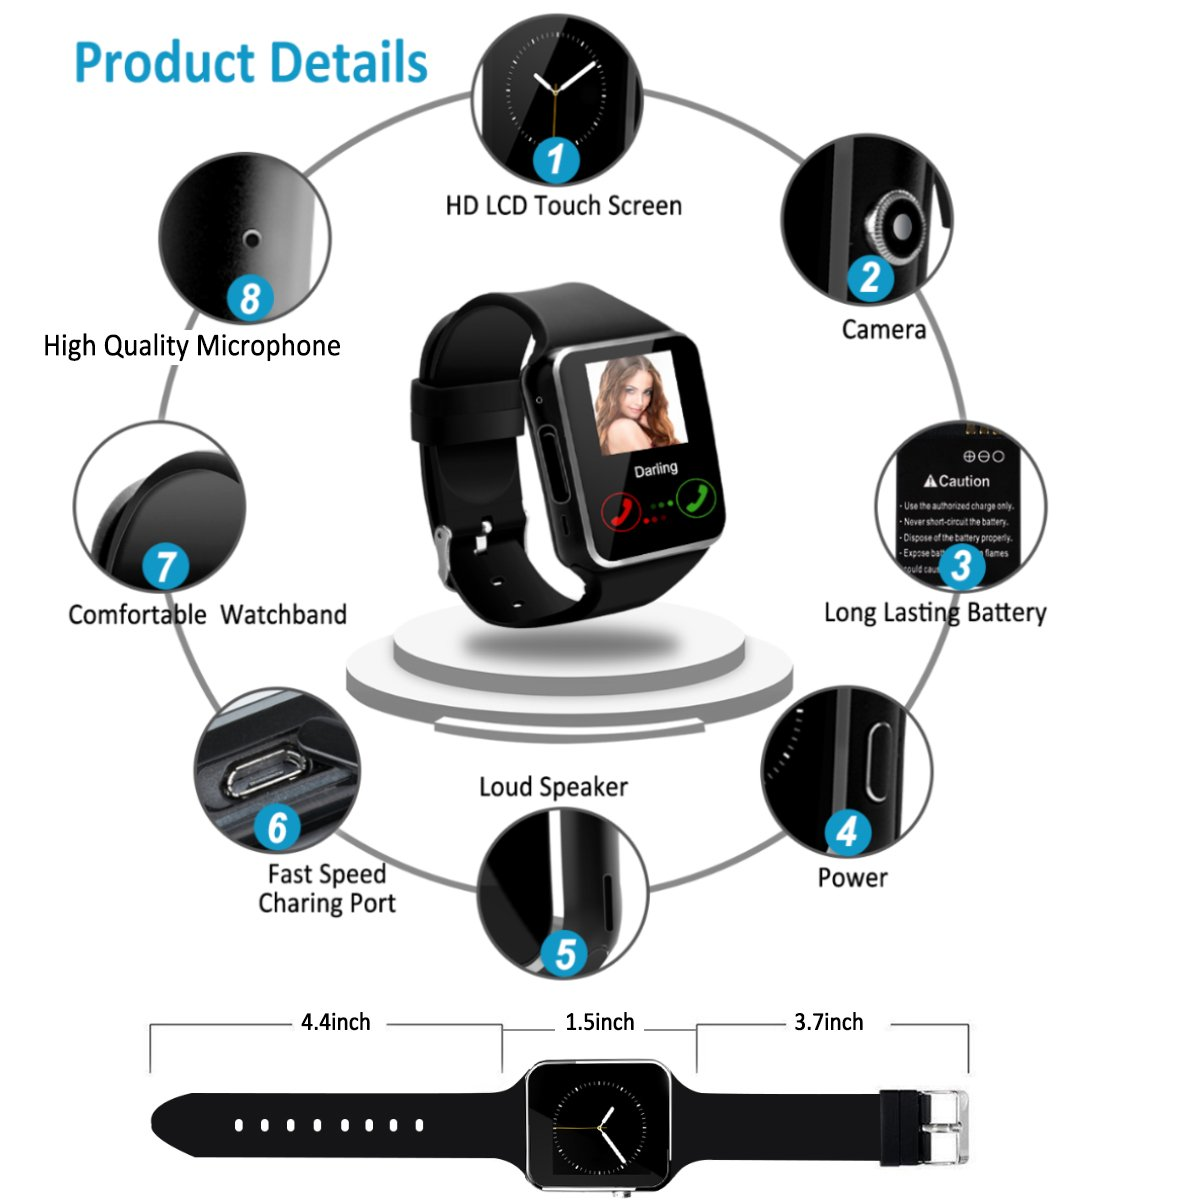 2018 Bluetooth Smart Watch for Andriod phones, iphone Smartwatch with Camera,Waterpfoof Watch Cell Phone ,Smart Wrist Watch Touchscreen for Android Samsung IOS Iphone X 87 6 5 Plus Men Women Youth by Luckymore (Image #5)